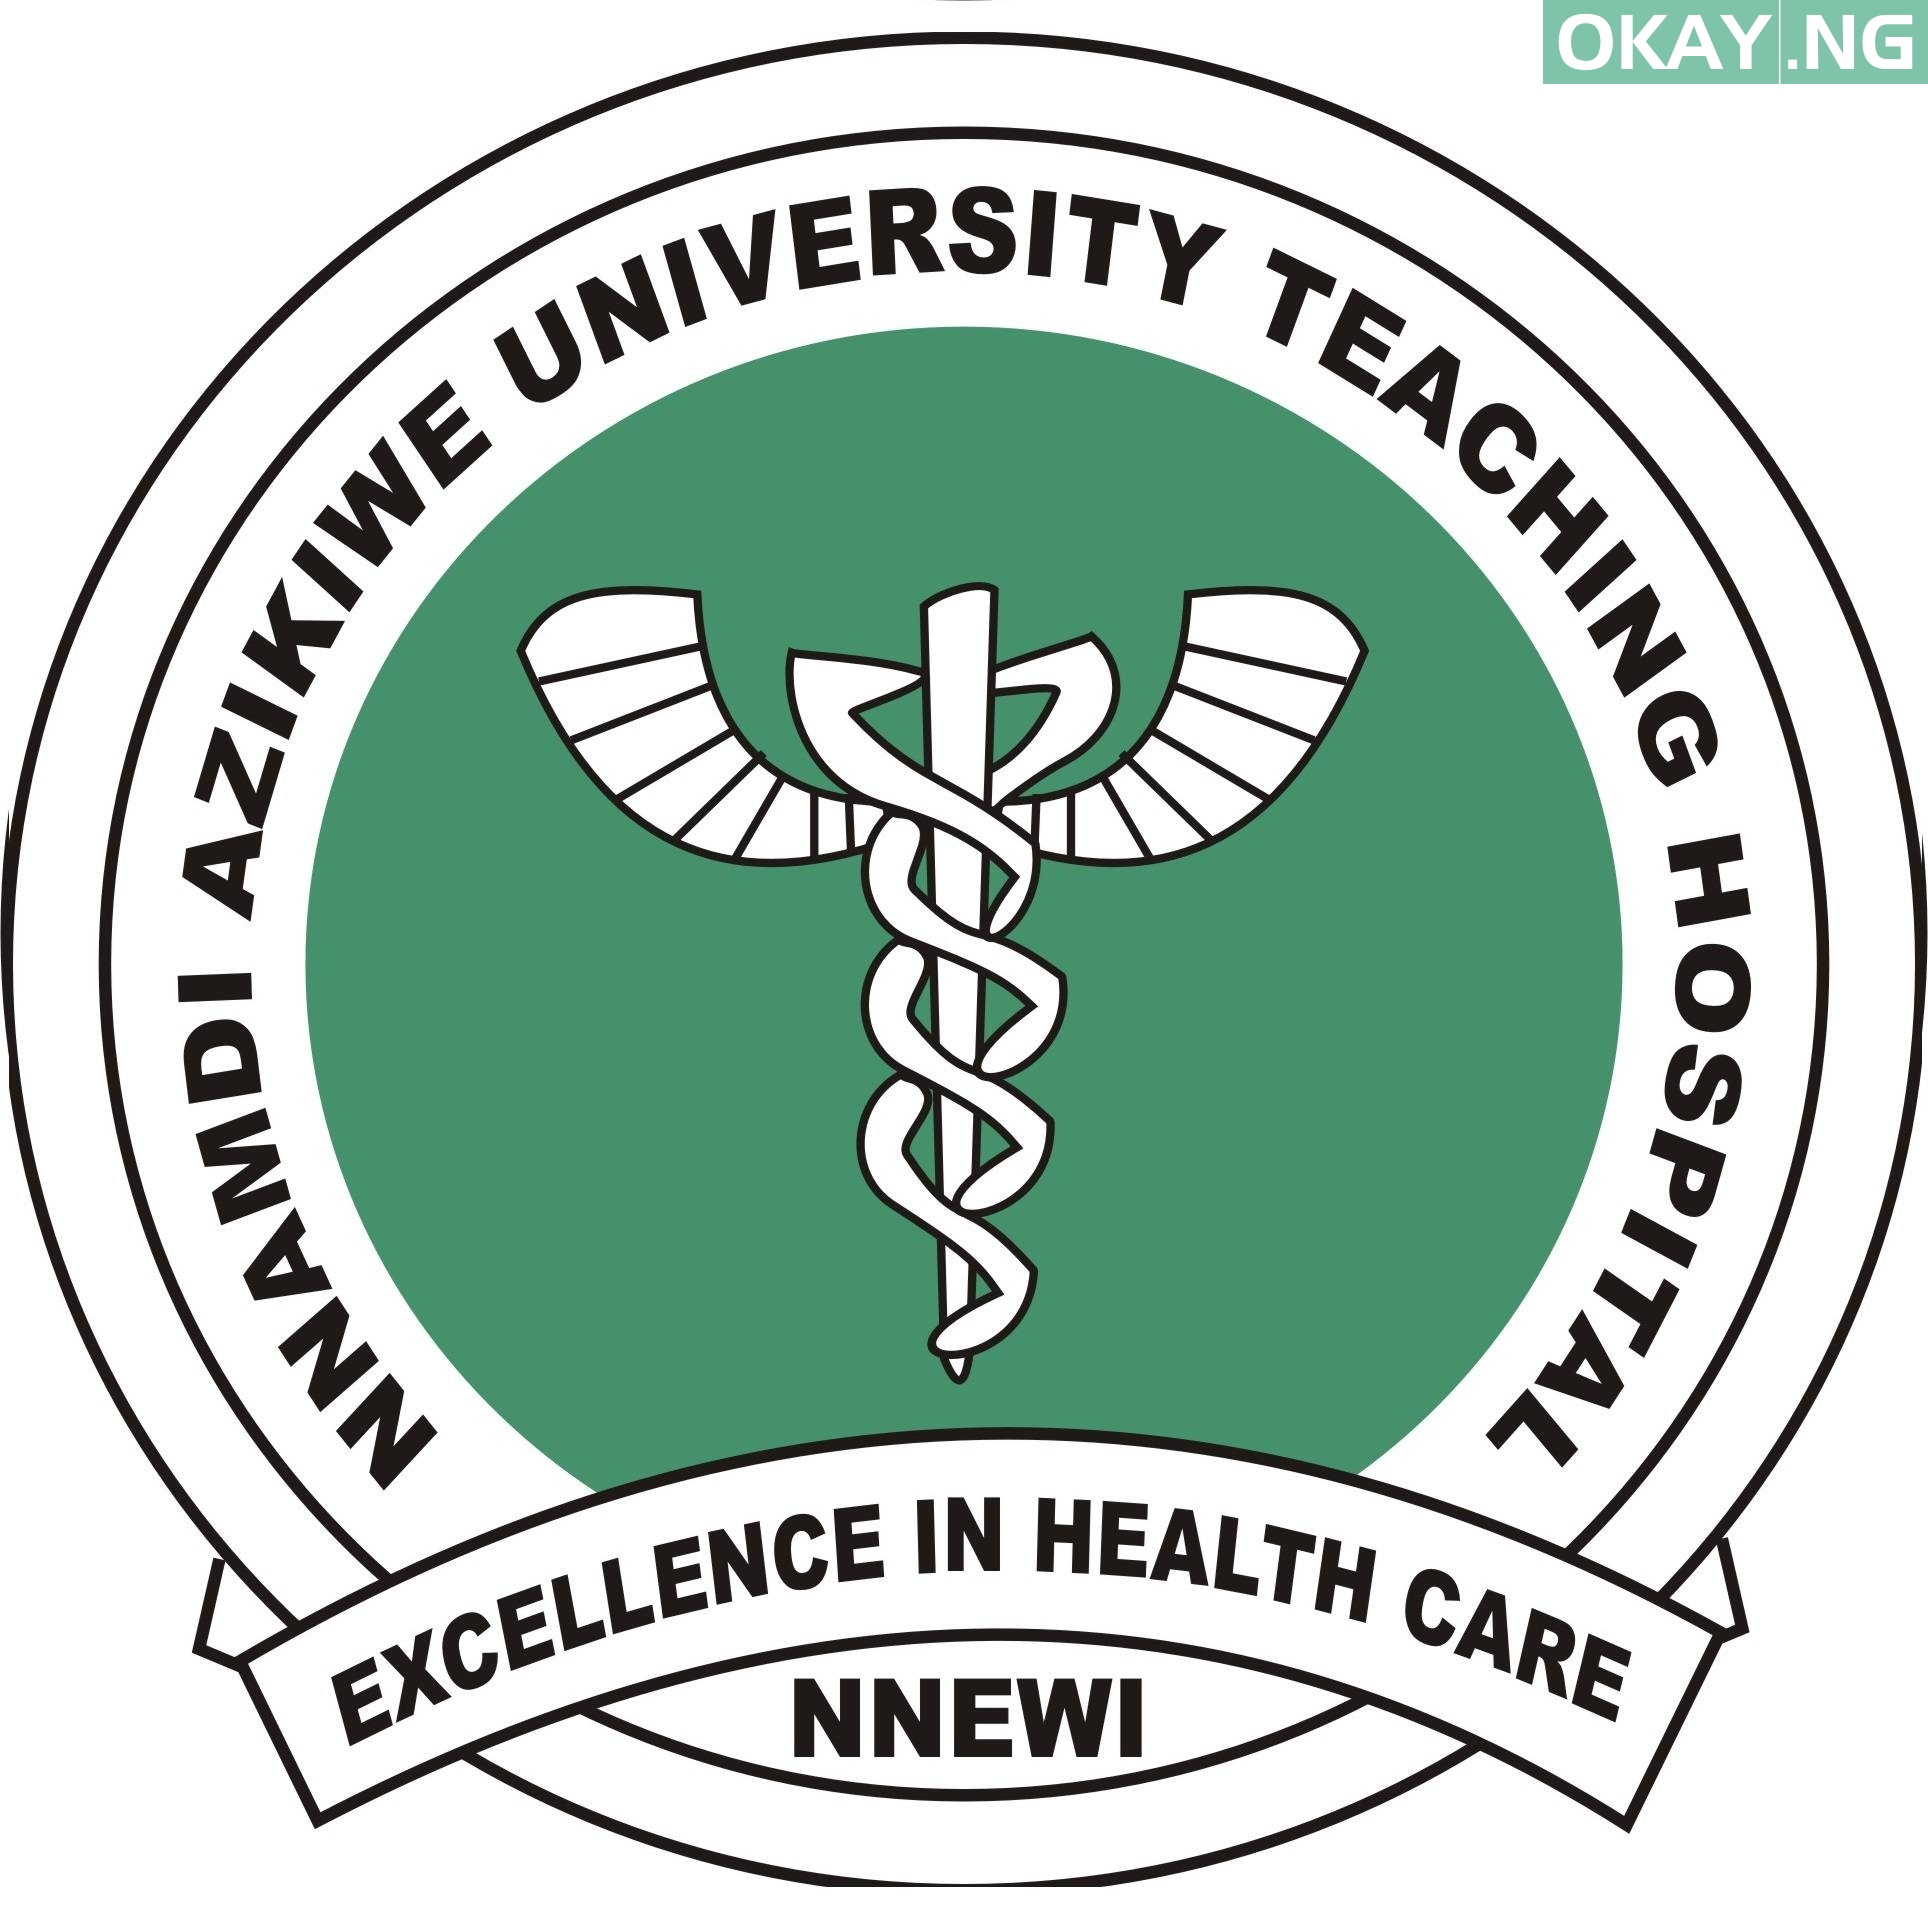 8afe157193217f16a31858c89eab8710nauth logo - Nnamdi Azikiwe Teaching Hospital 2018/2019 Admission Into School of Nursing